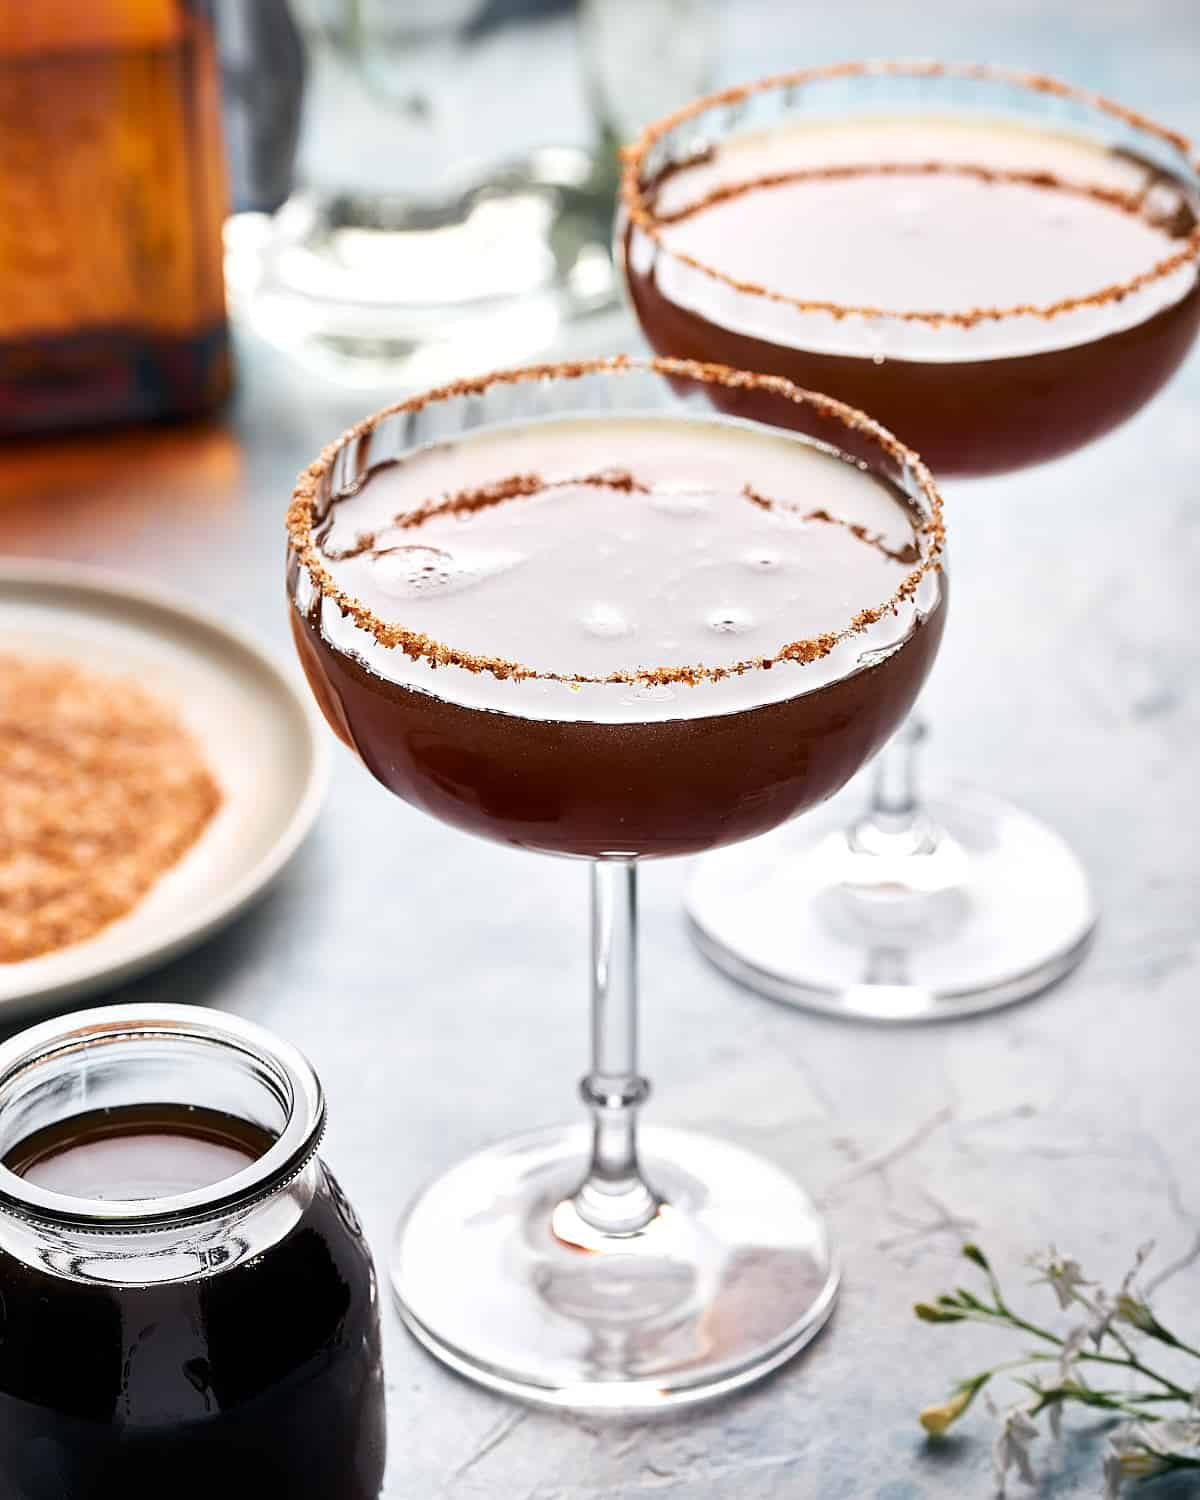 Sideview of 2 margarita cocktails with tamarind juice